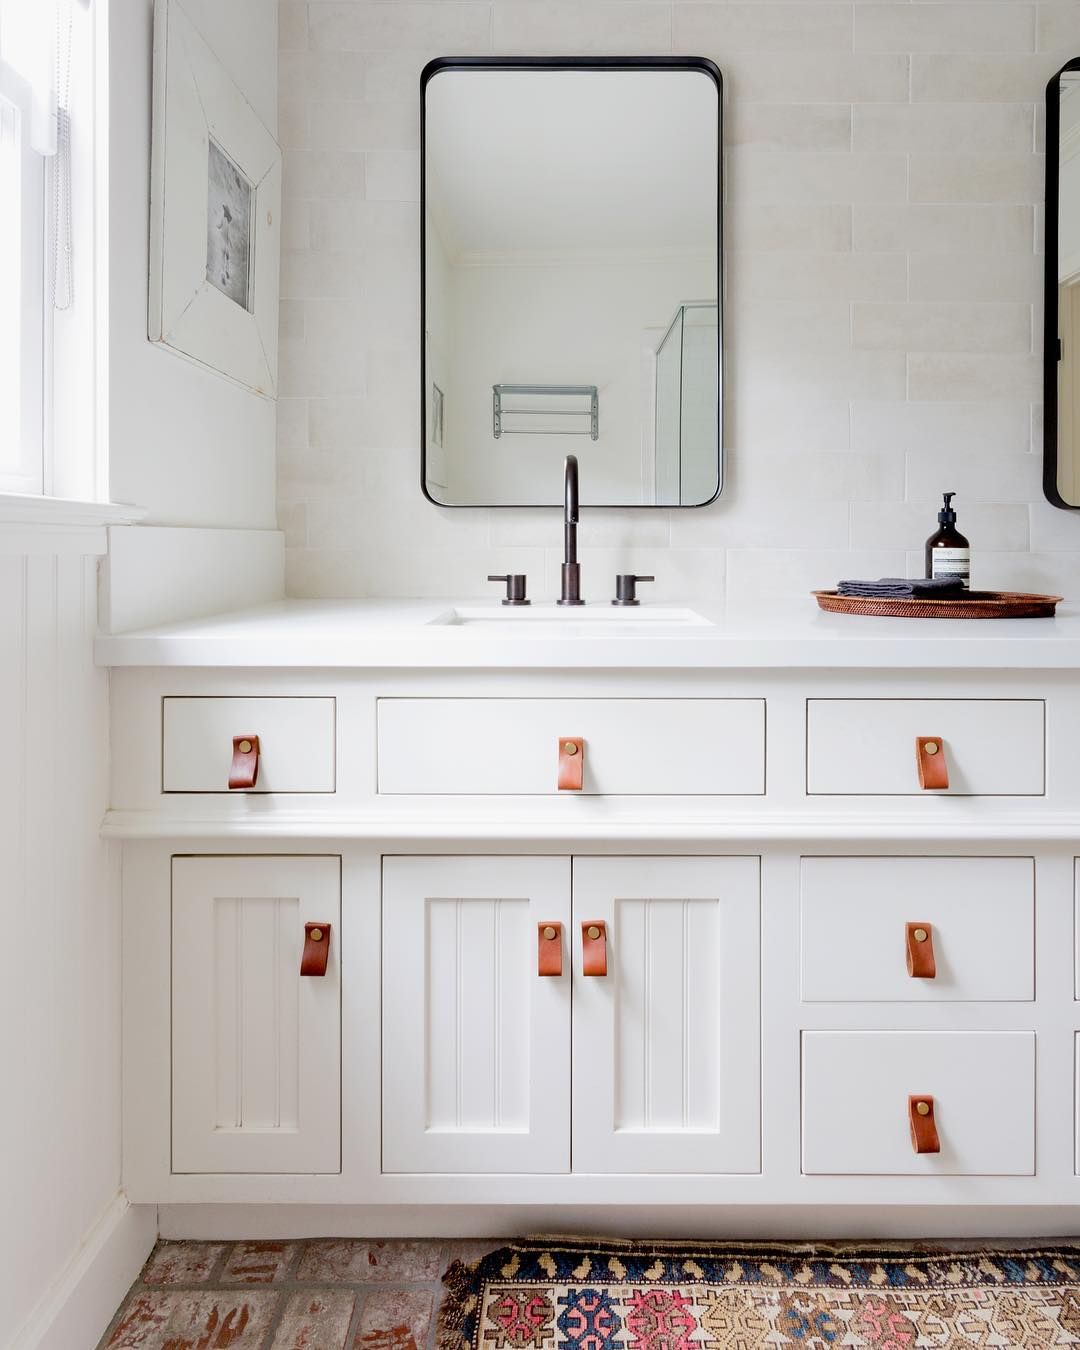 Bathroom With Leather Pulls For S And Handles Design By Lada Webster